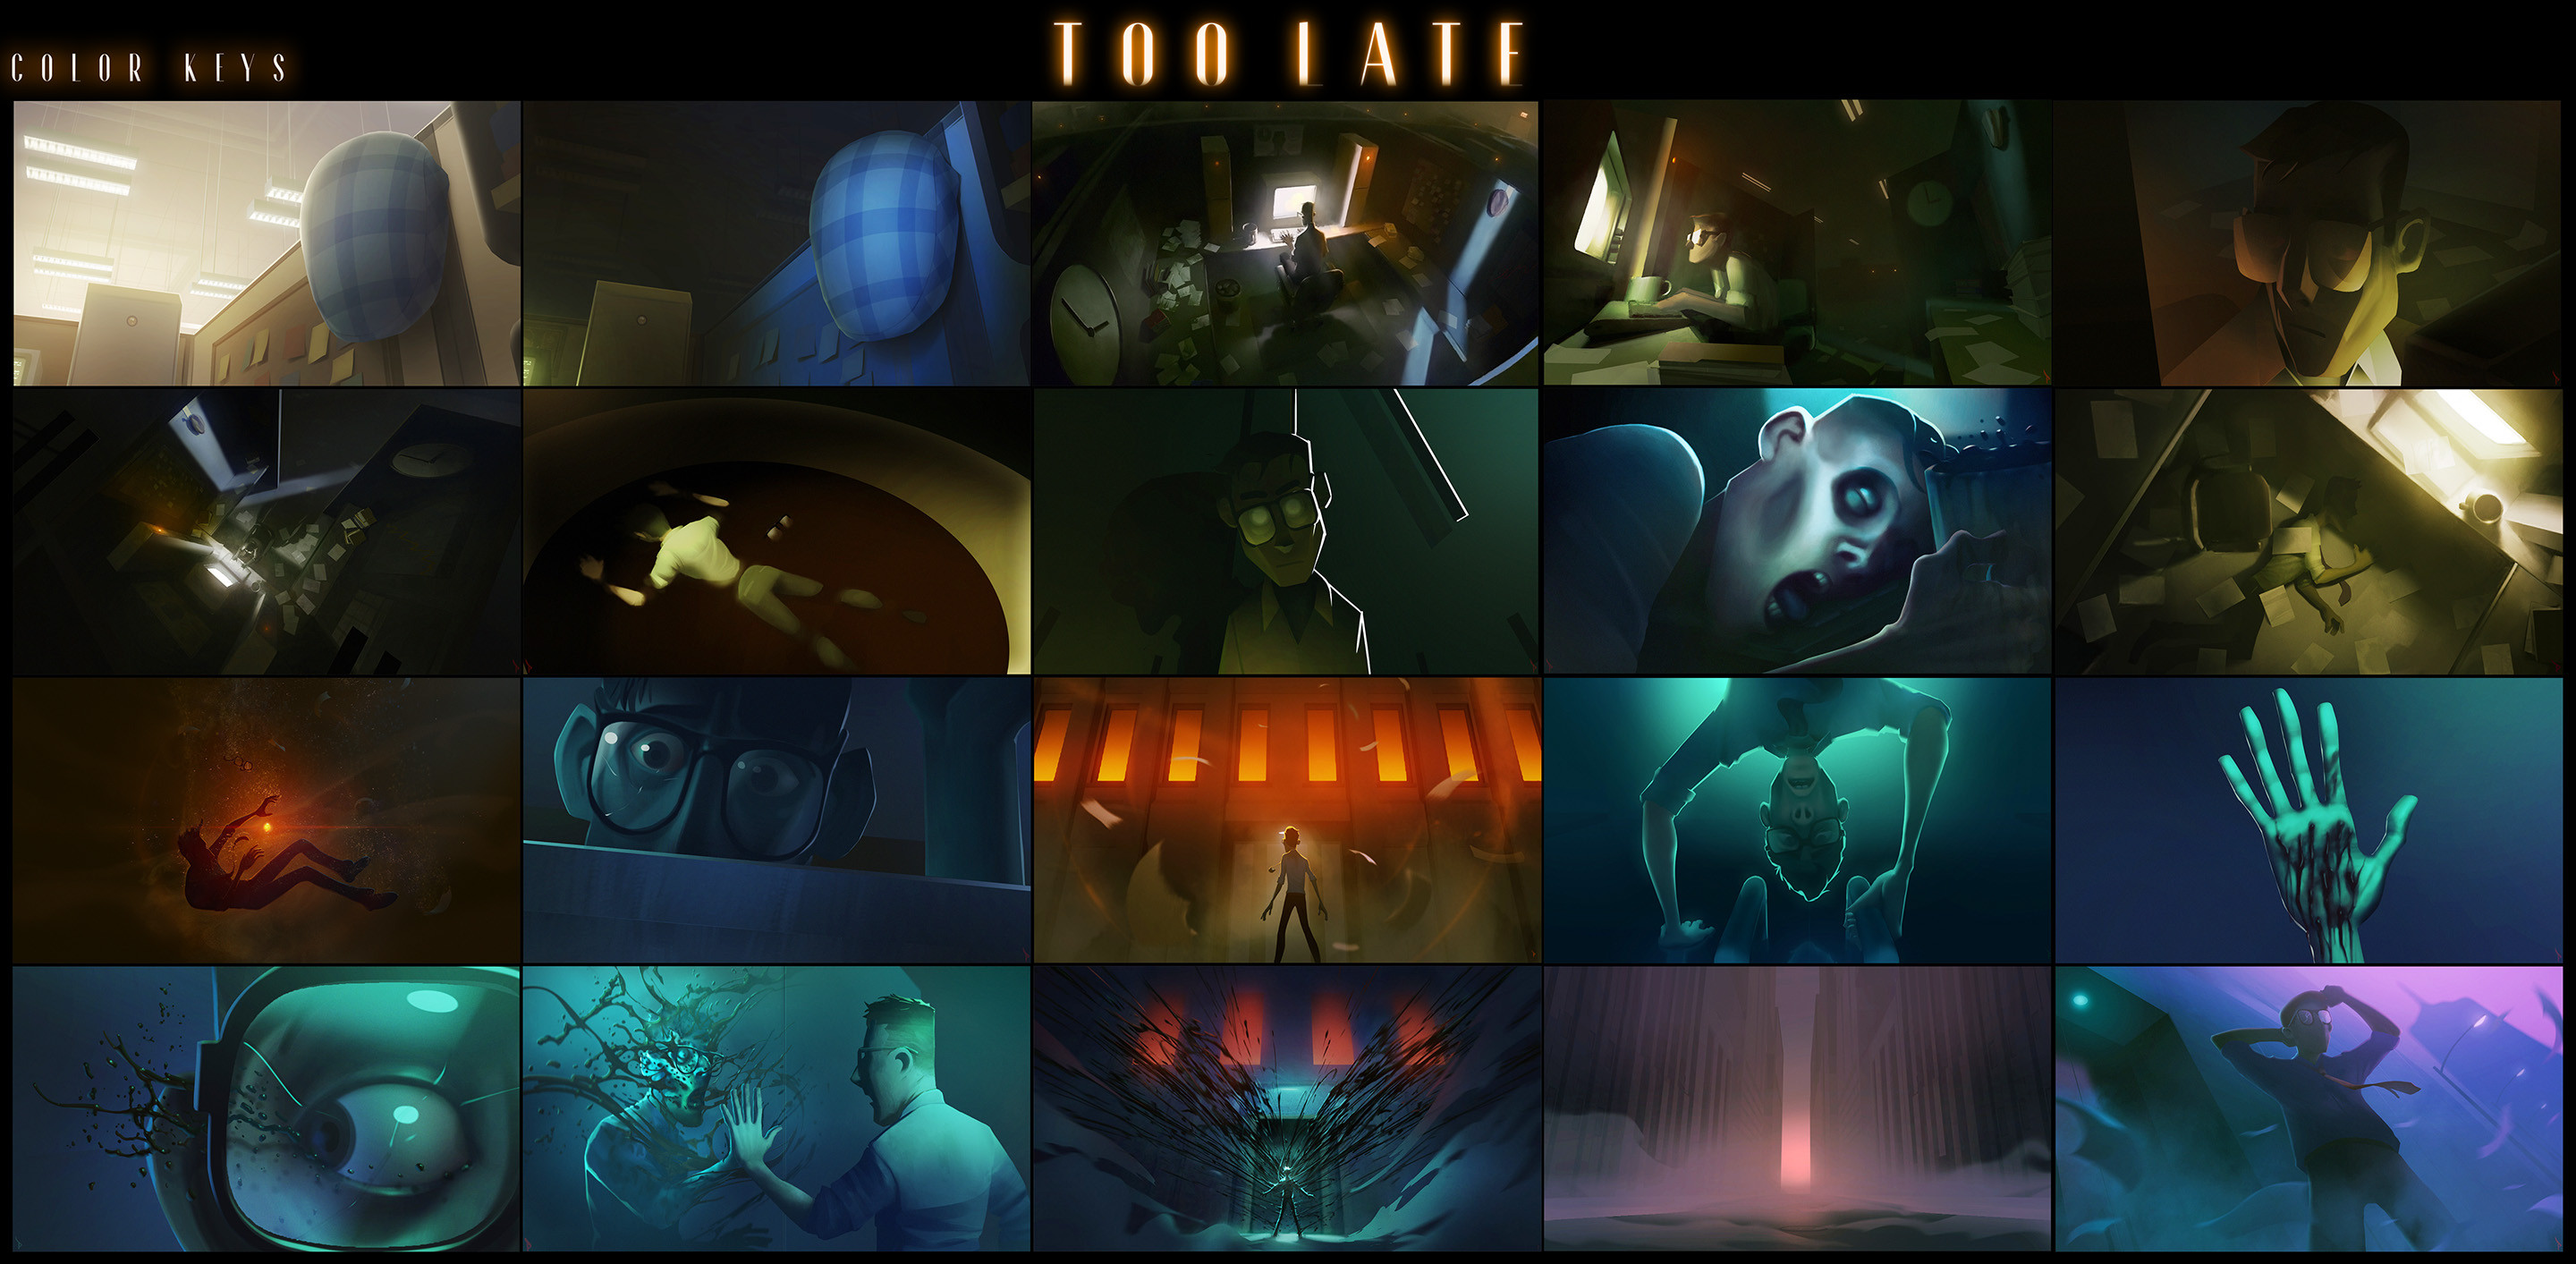 Original color keys for the film. Some were created before any cg work began, and a couple after some greybox or block-in art was made.